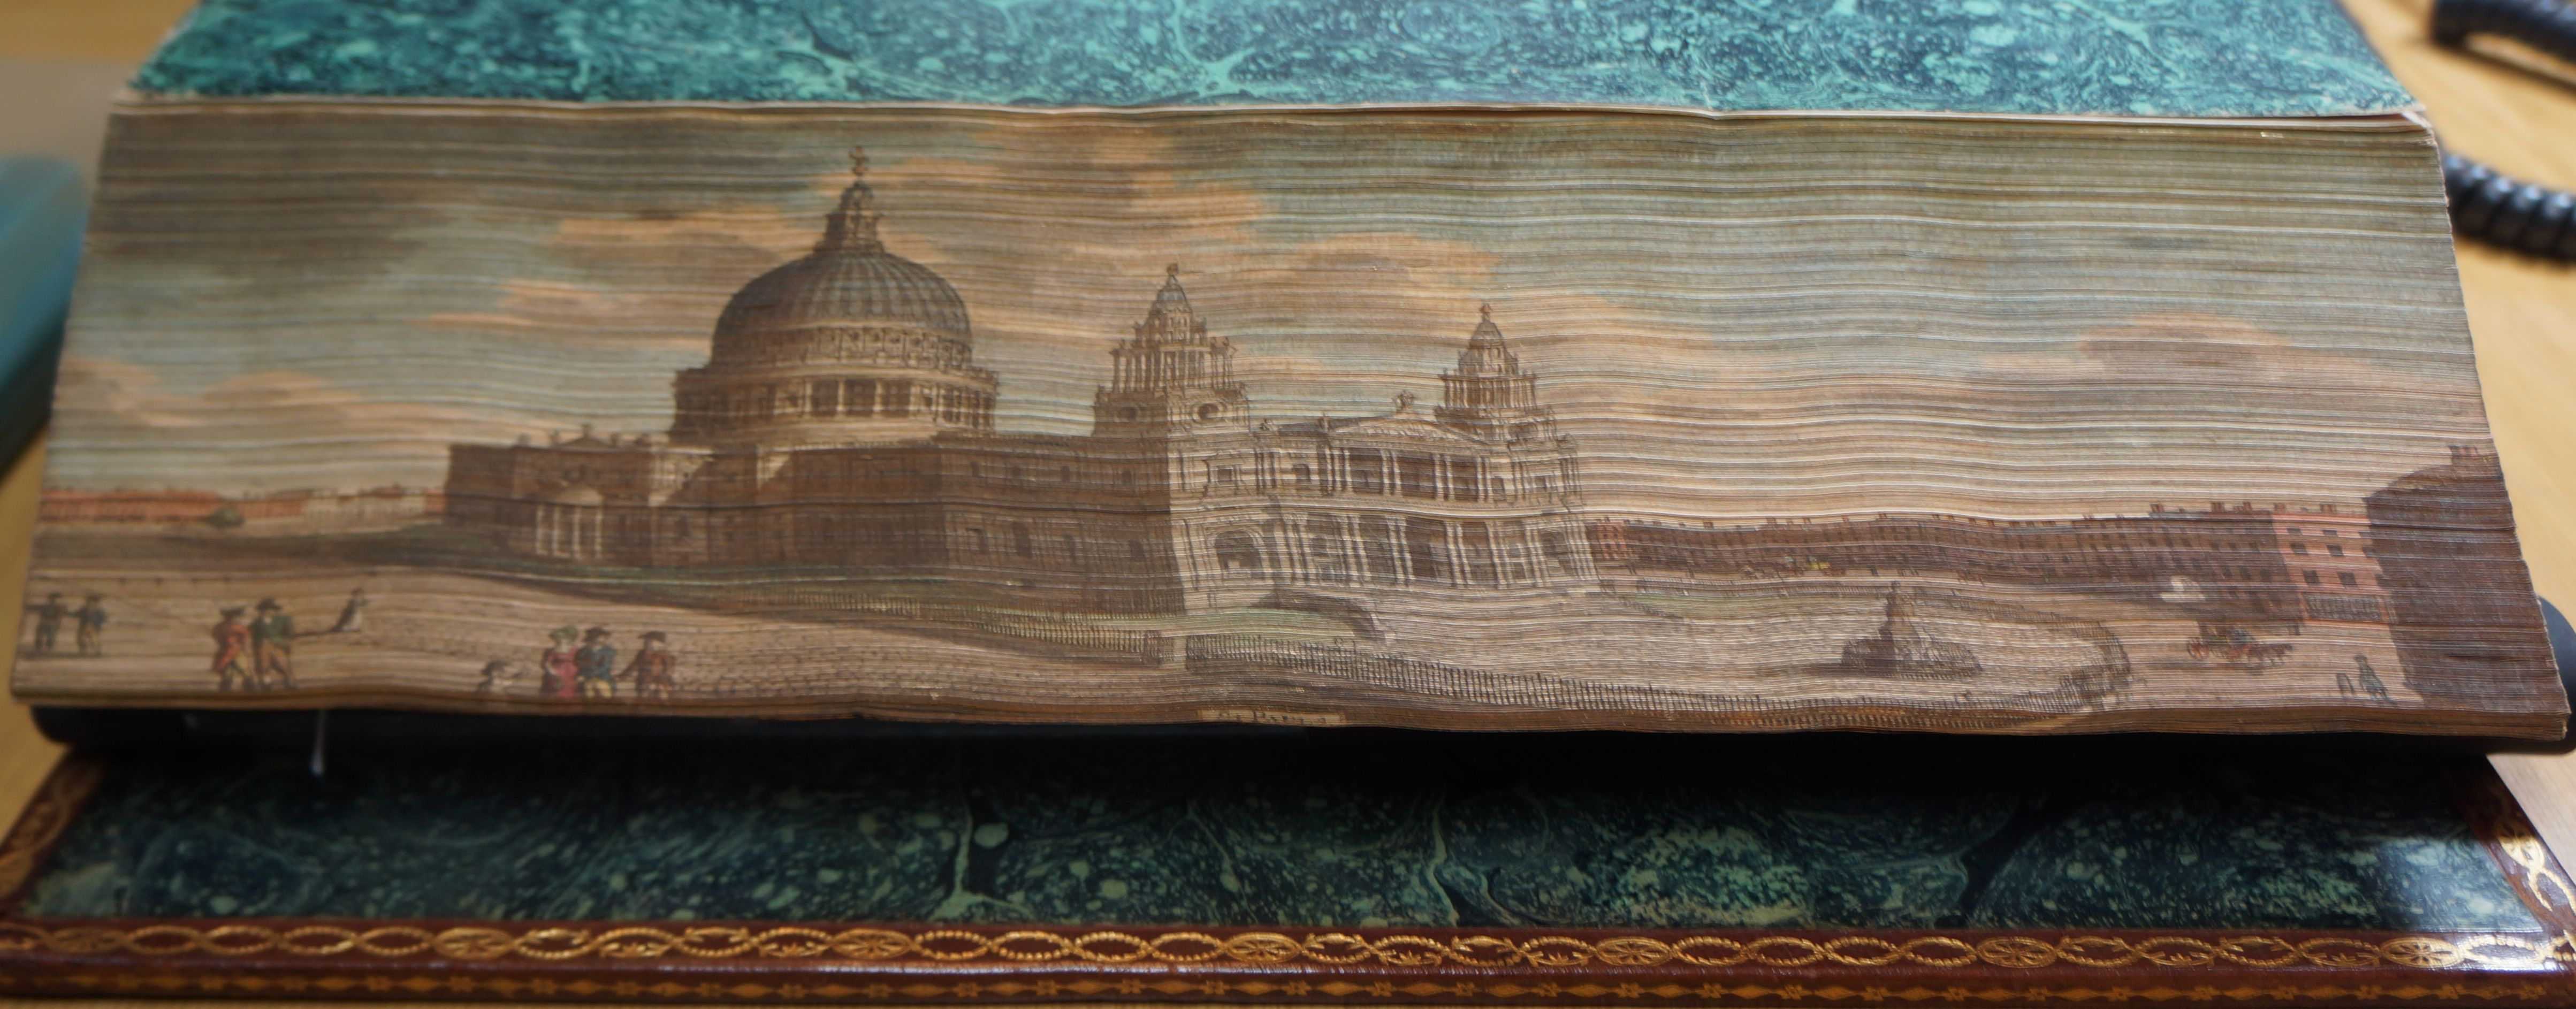 A Hidden Perspective of St Paul's: Mary Johnson's Bible